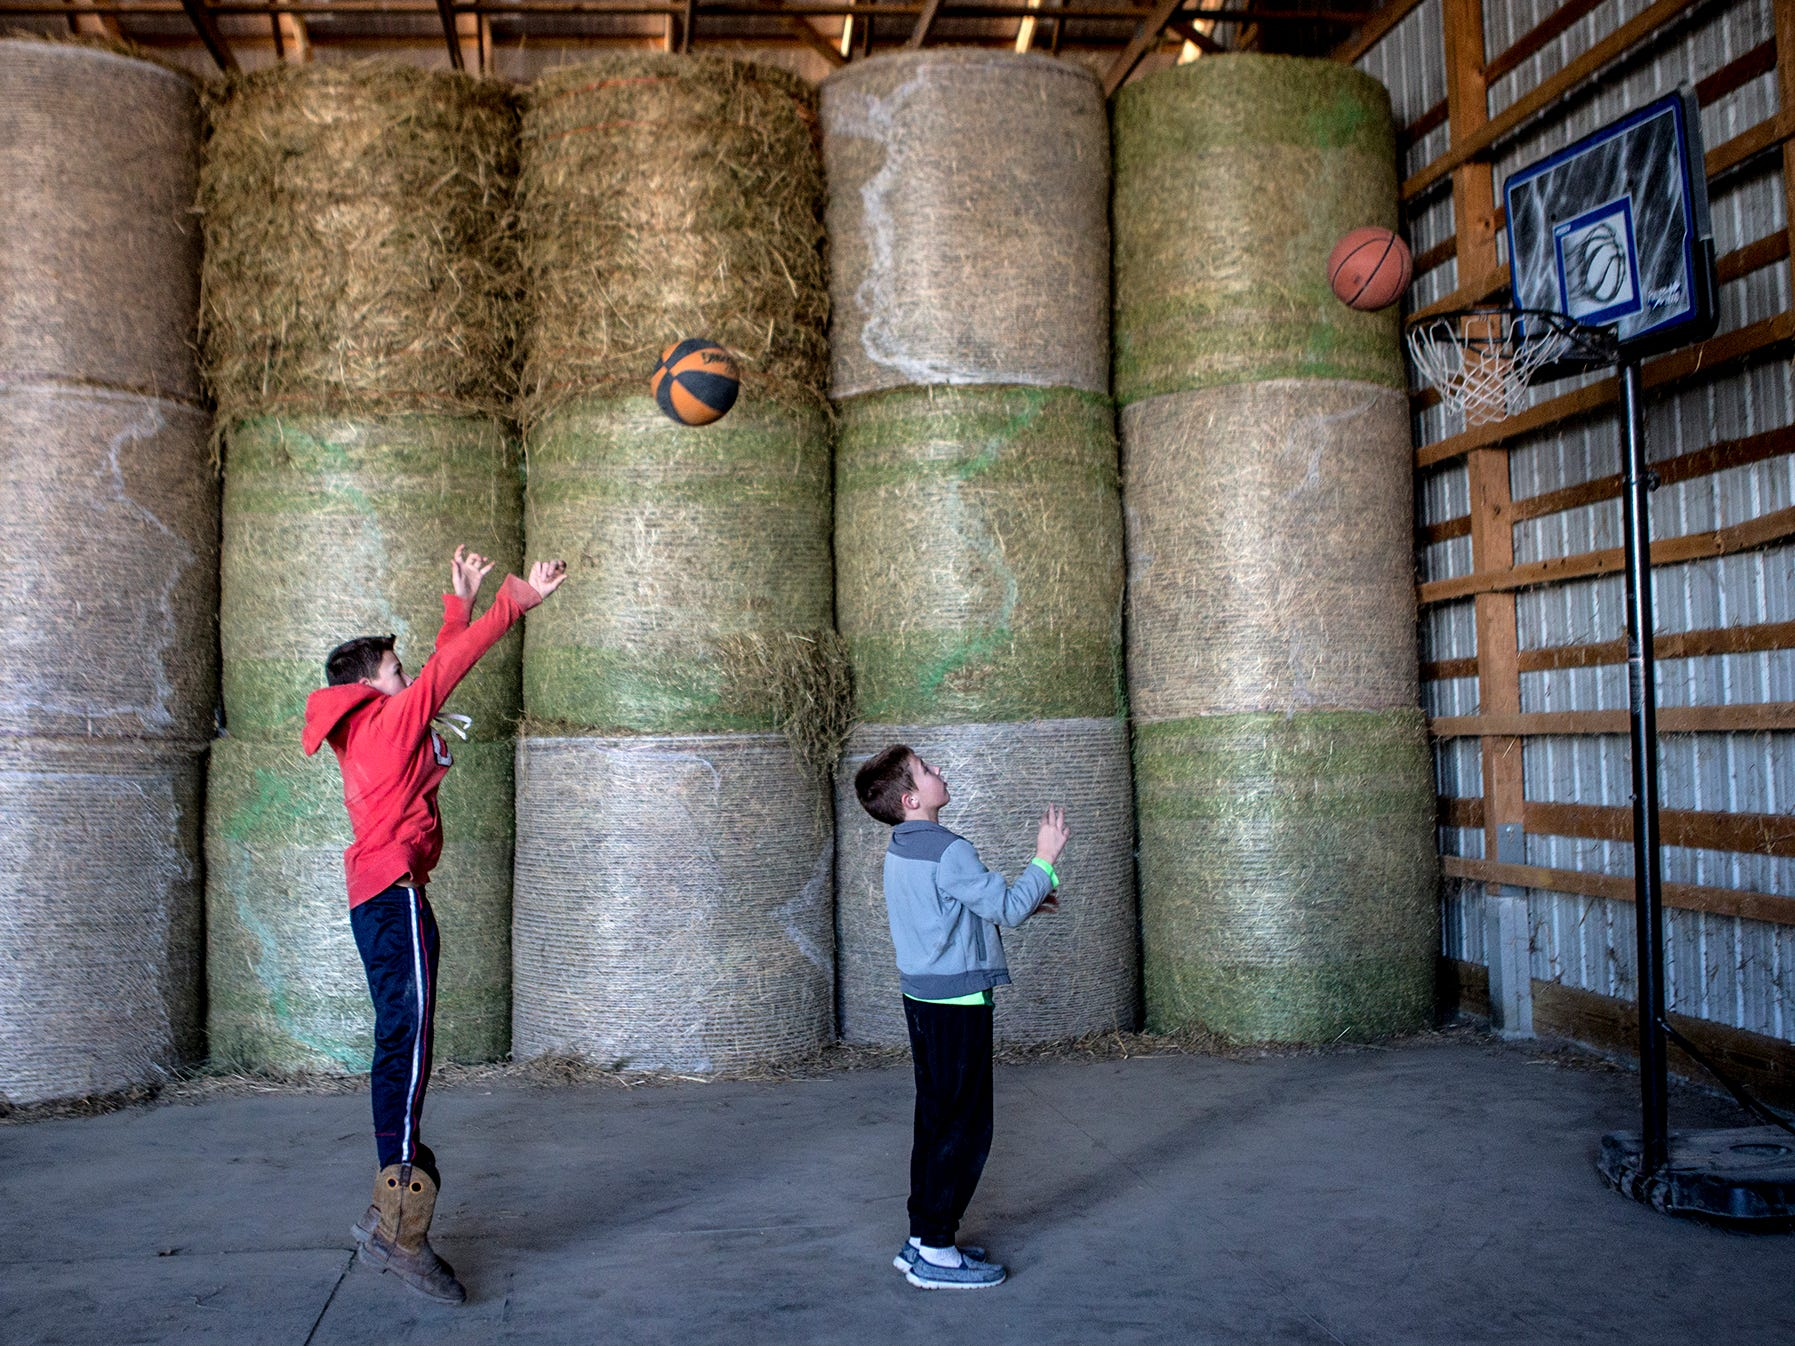 The boys play basketball space that has been made by the sale of hay bales. Both boys play youth basketball.